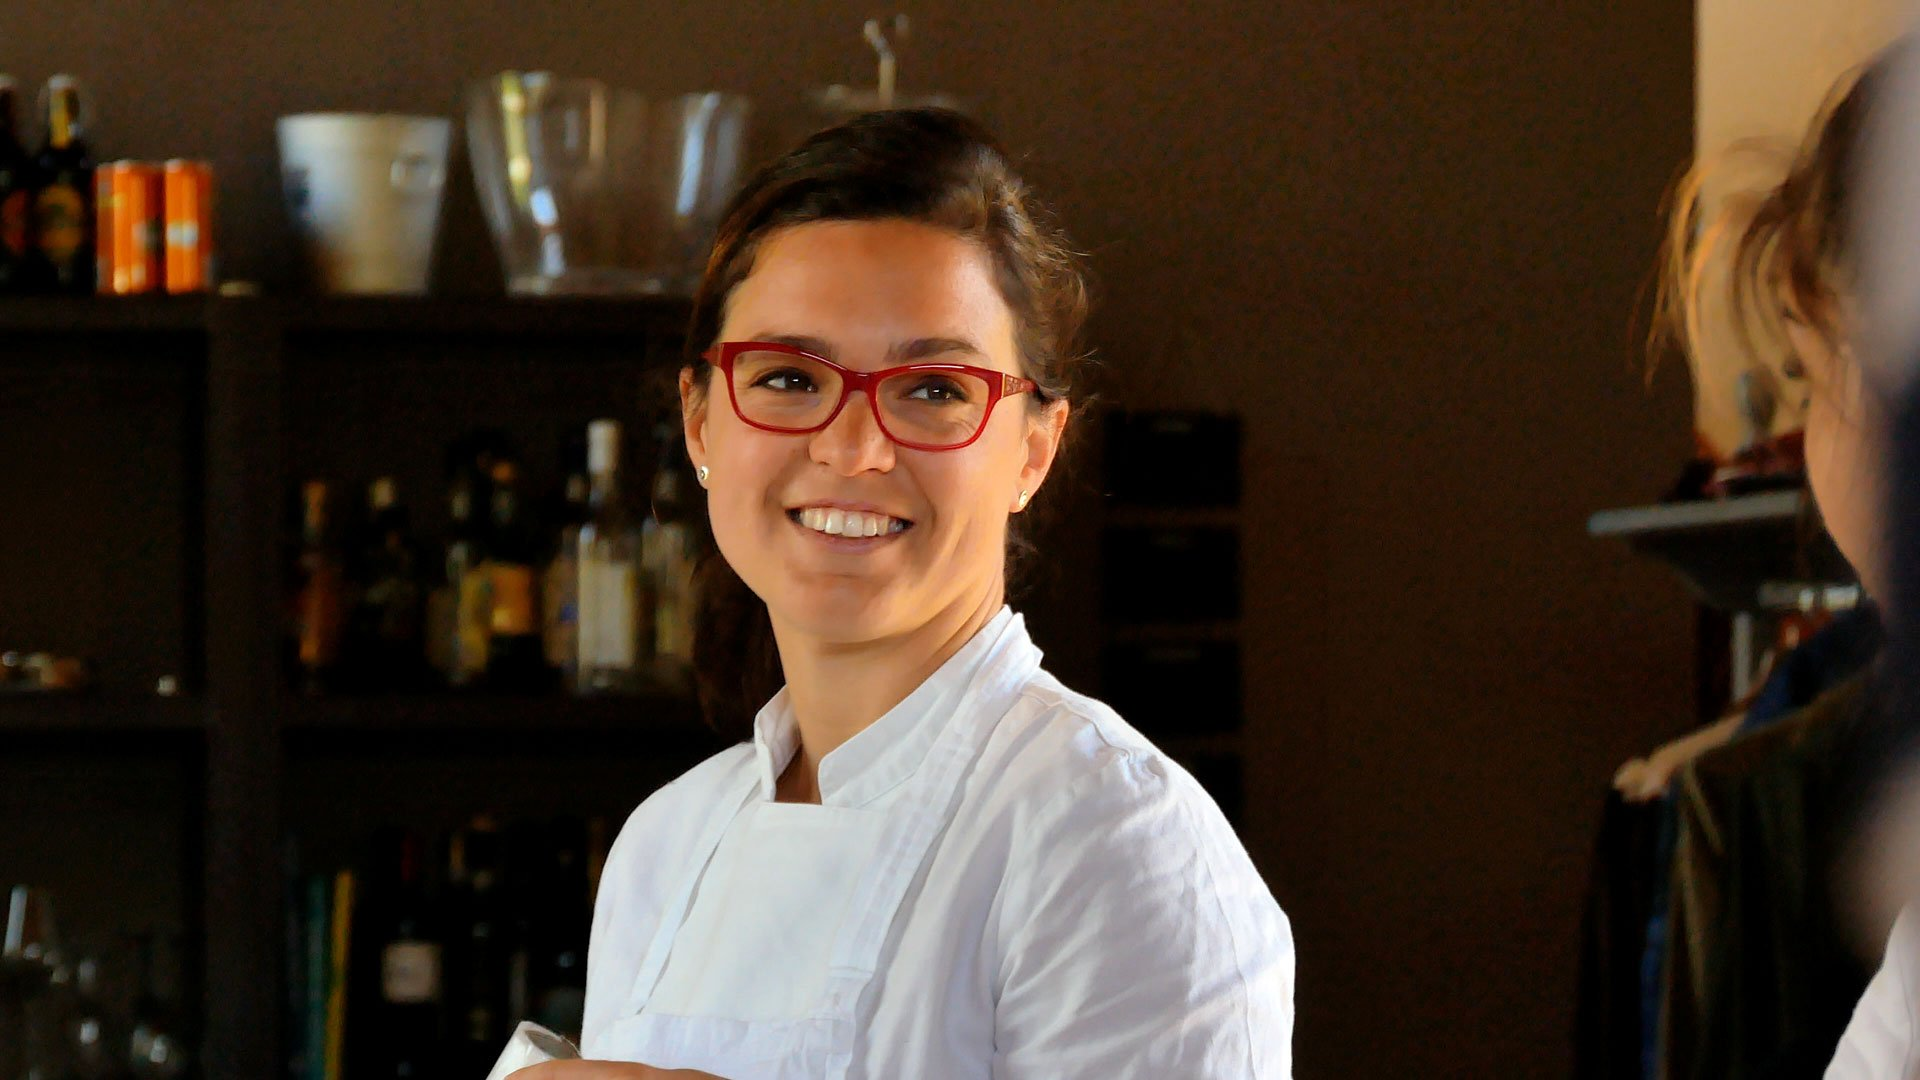 Lisa, one of our cooks